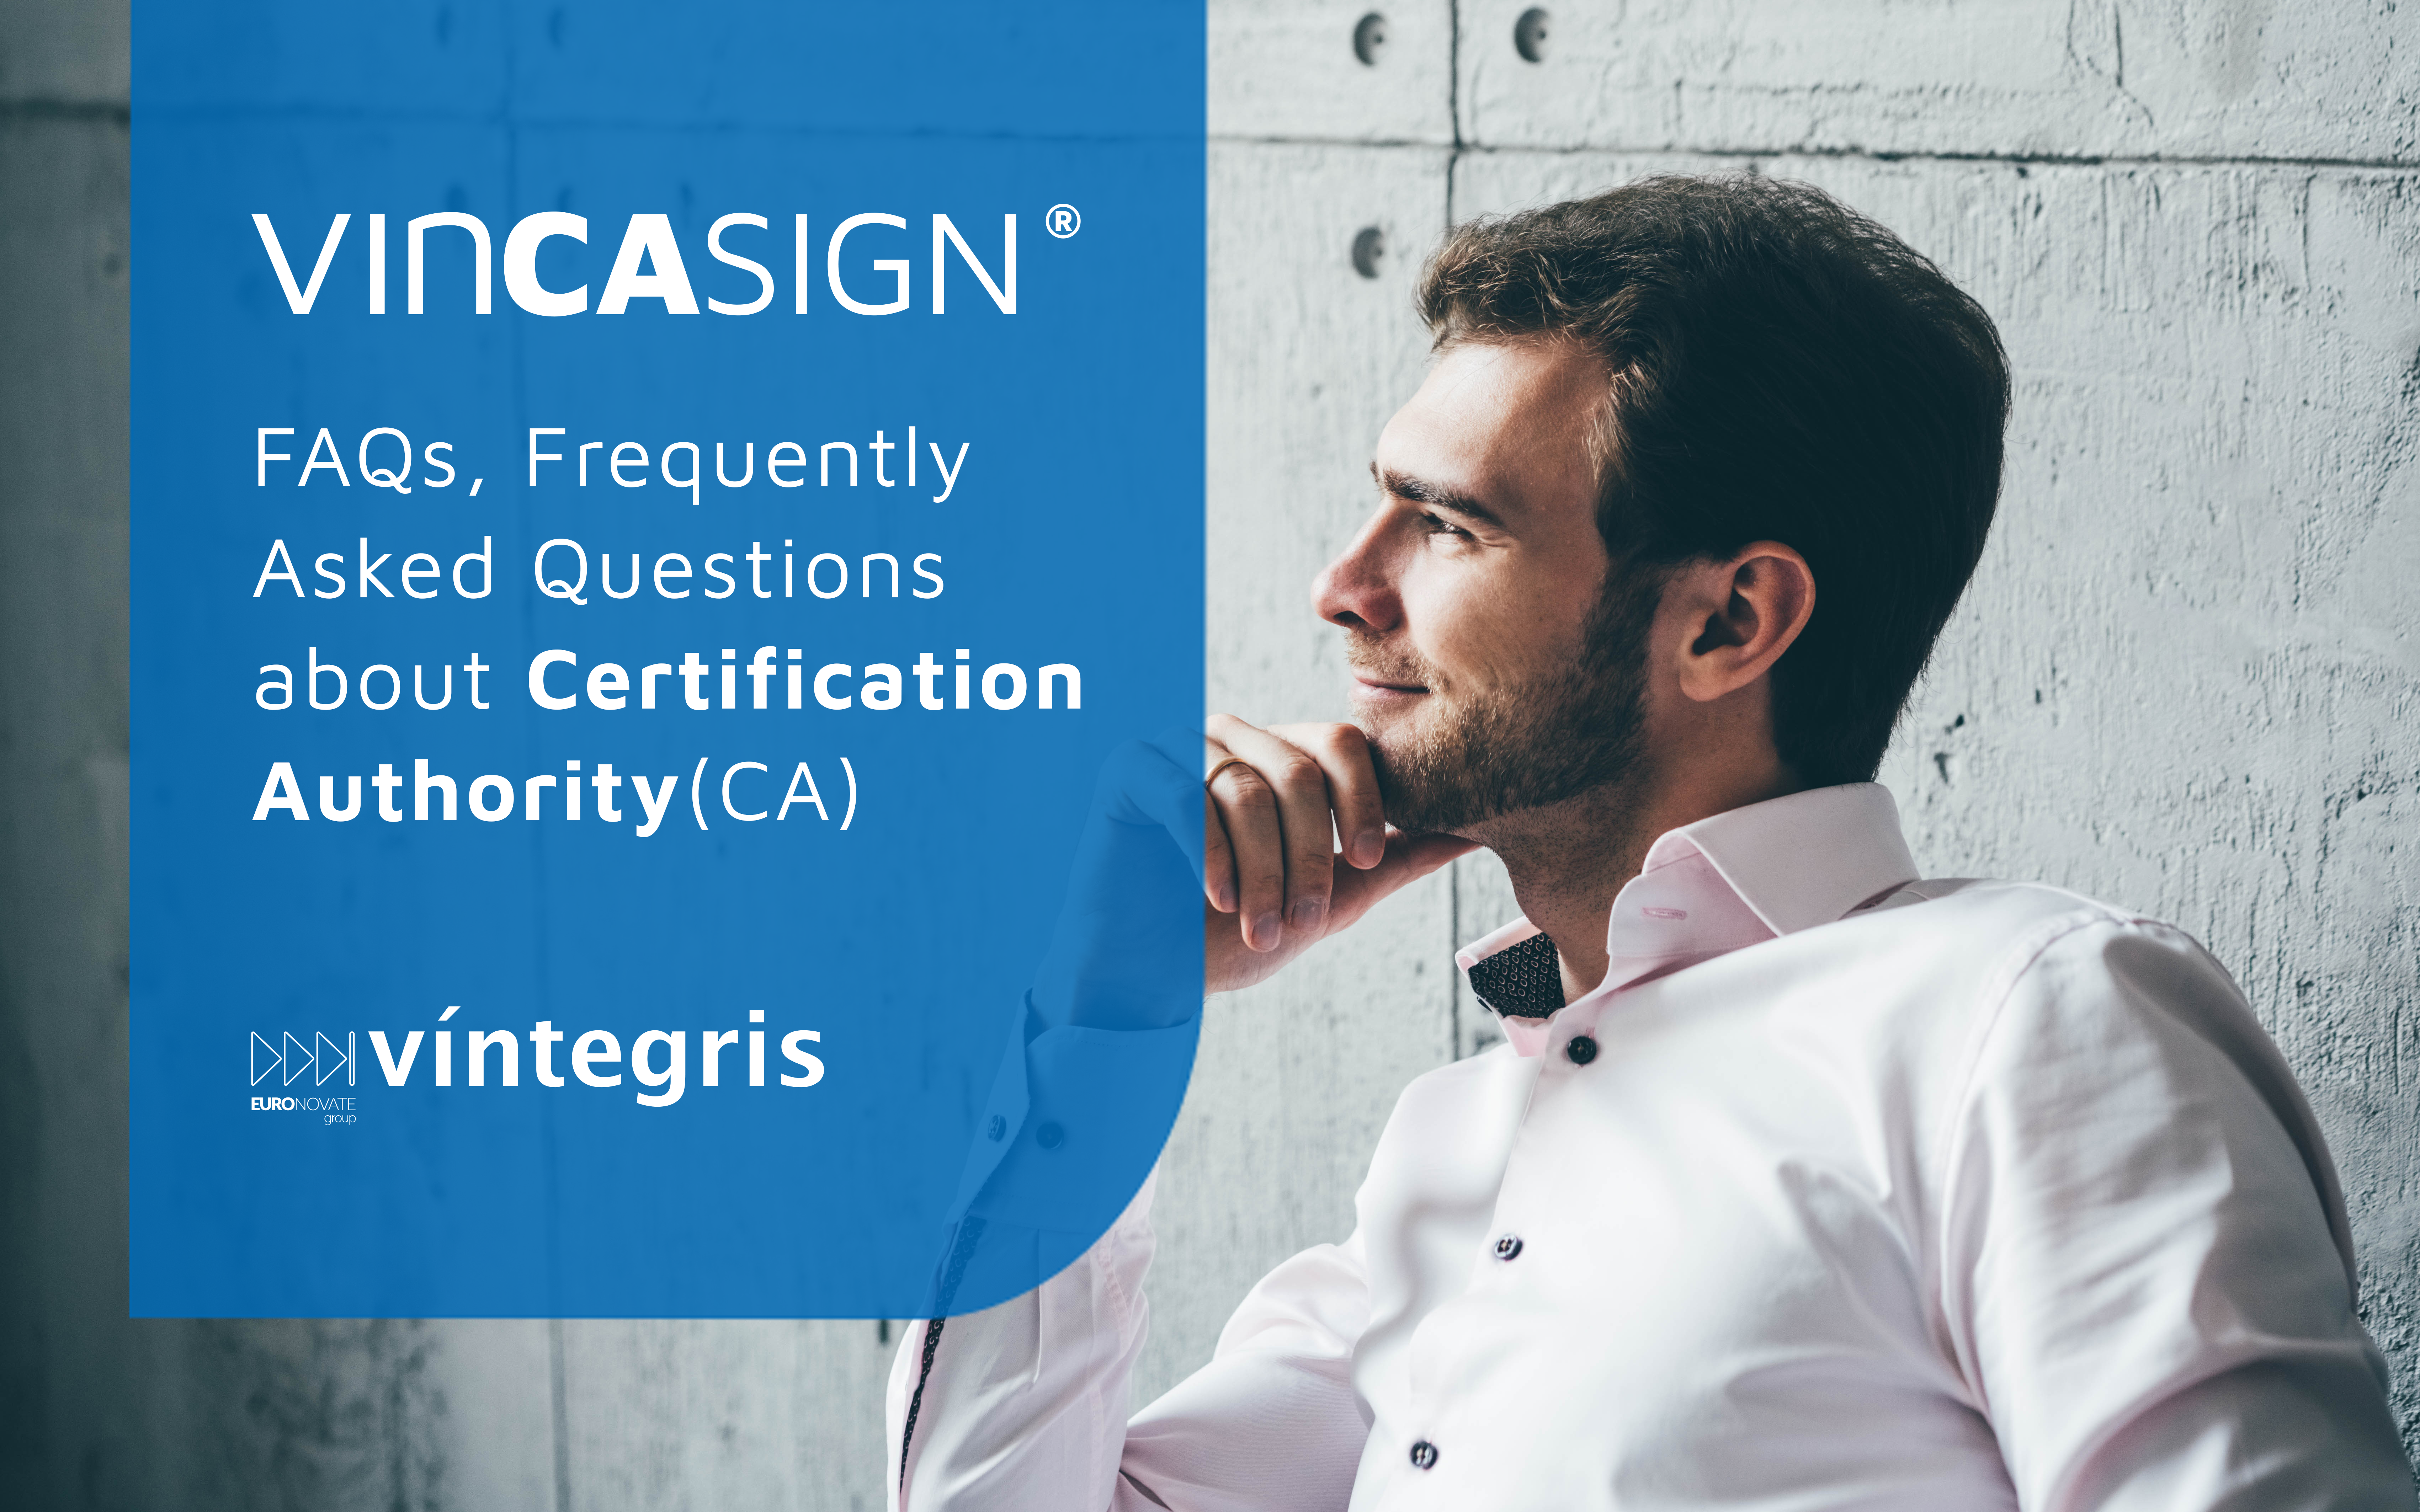 FAQ about Certificate Authority (CA)